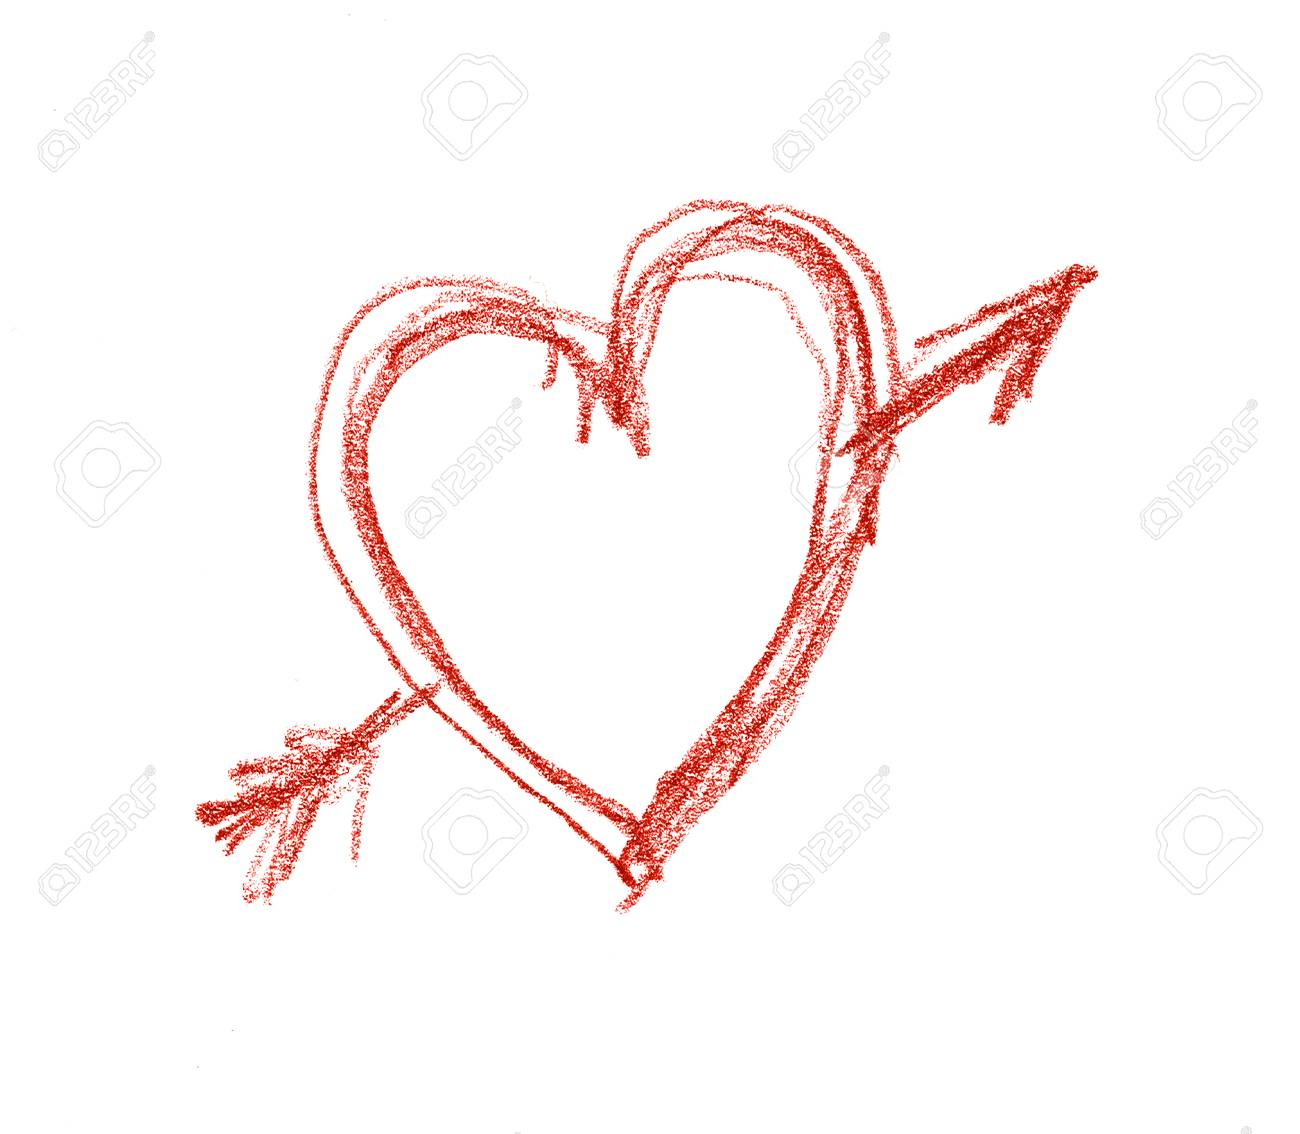 rough red pencil drawn heart shape with arrow through it on stock